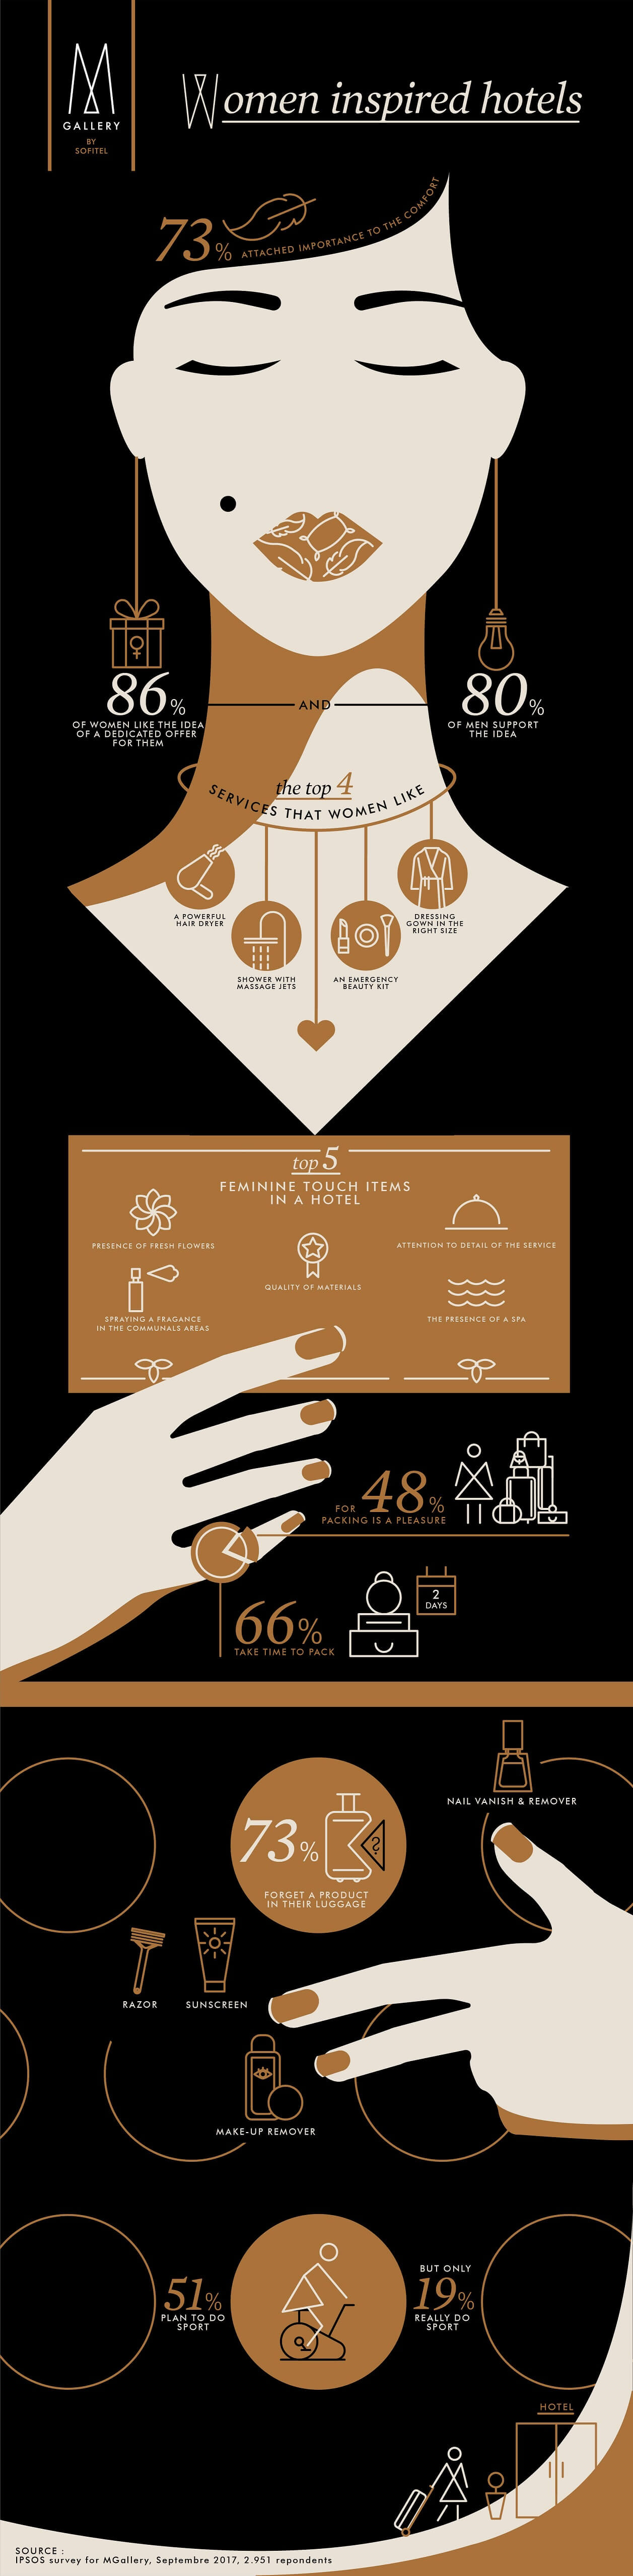 """infography """"Inspired by her"""" by MGallery"""